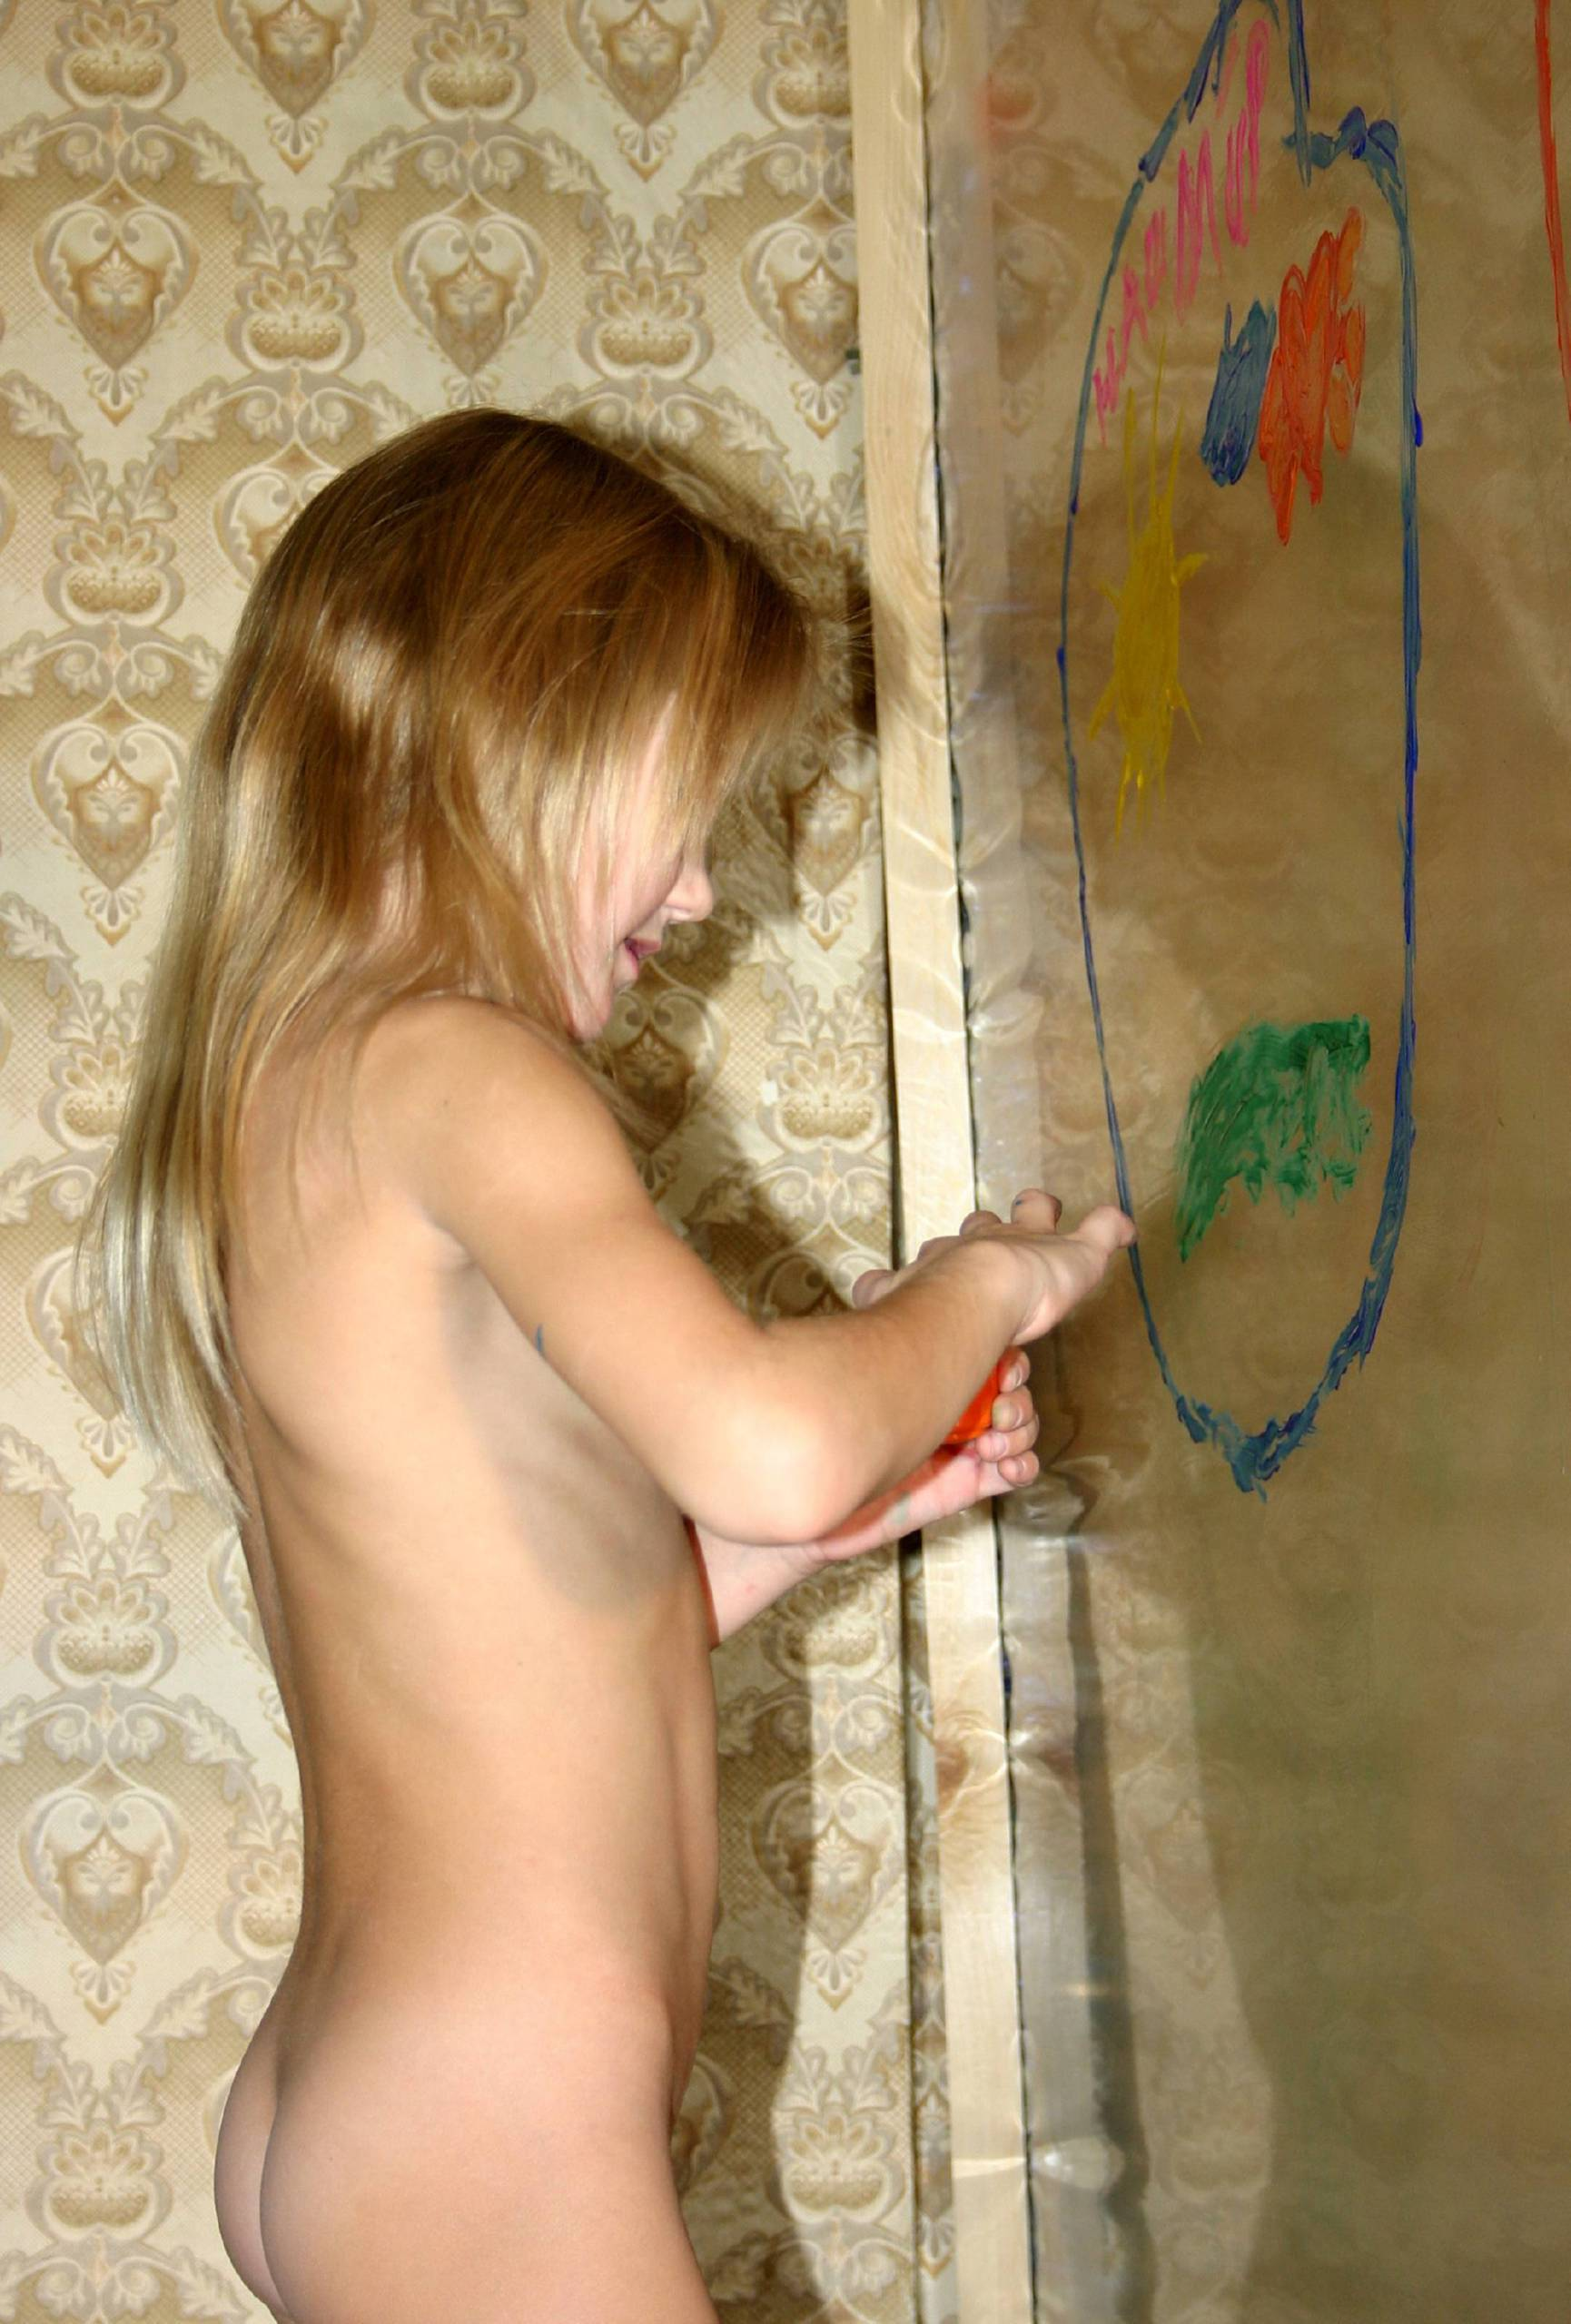 Pure Nudism Images World Atlas Finger Paint - 1